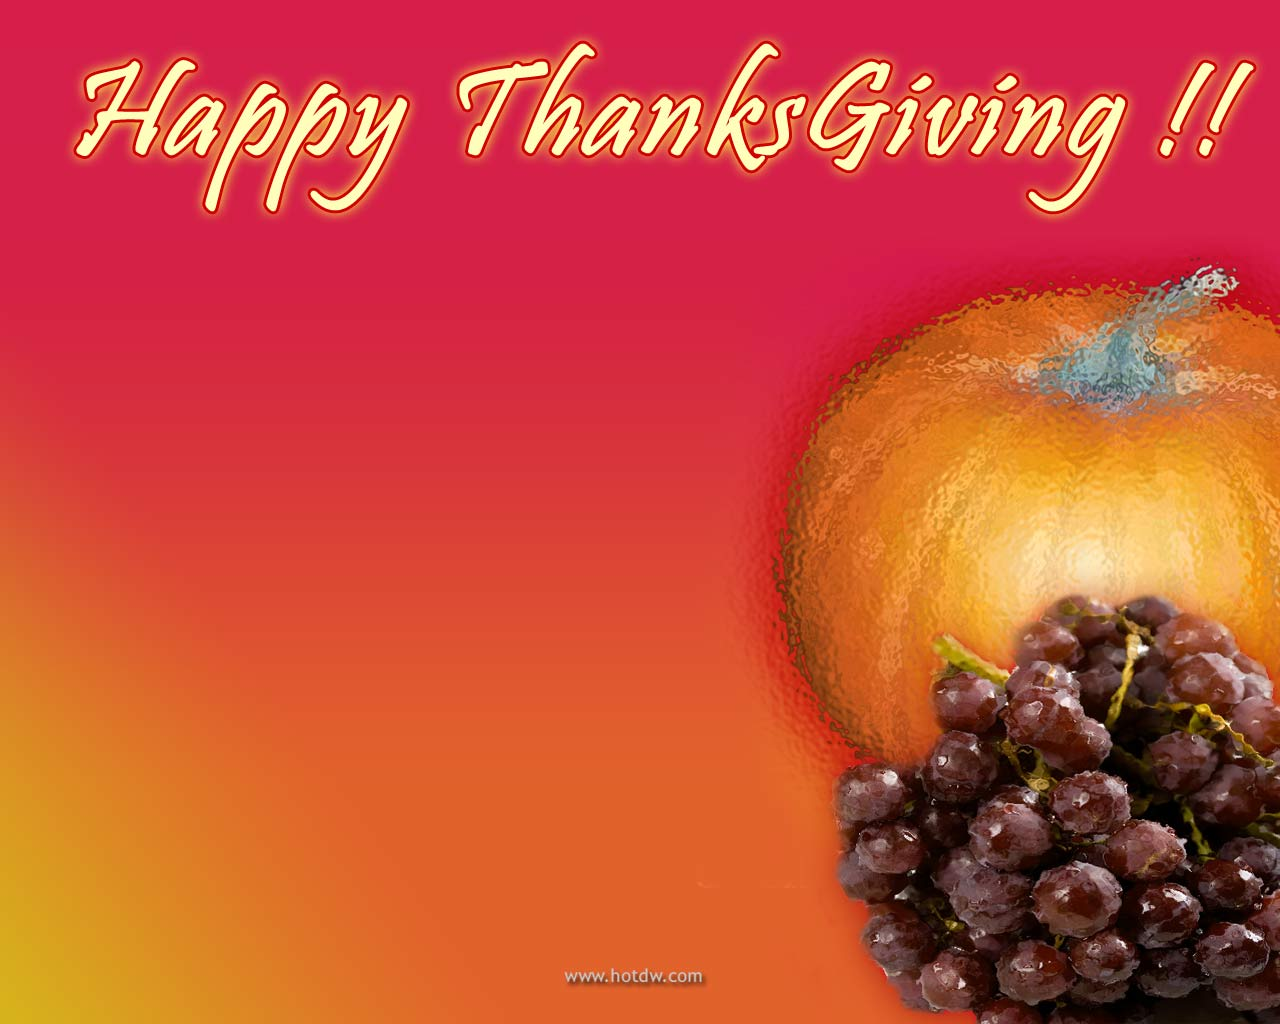 collection of thanksgiving clipart offers many pictures of